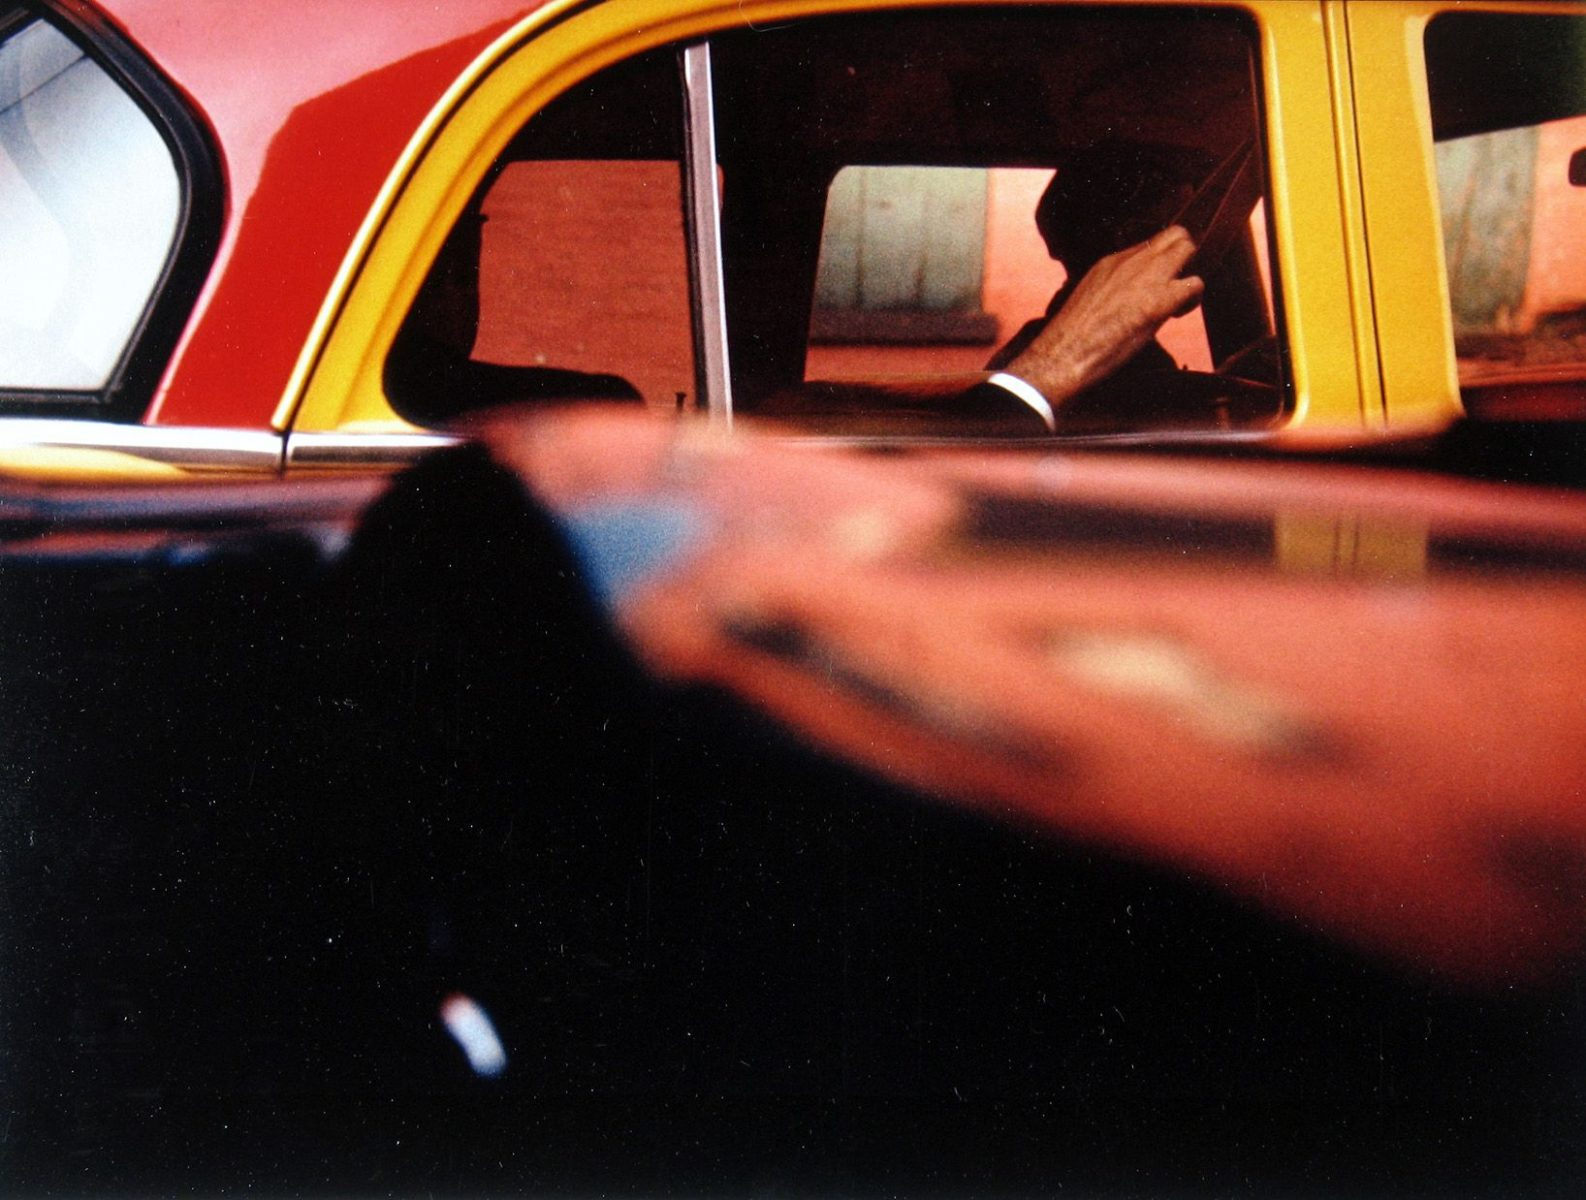 Color photography, Taxi, New York, USA, 1957 photograph by Saul Leiter